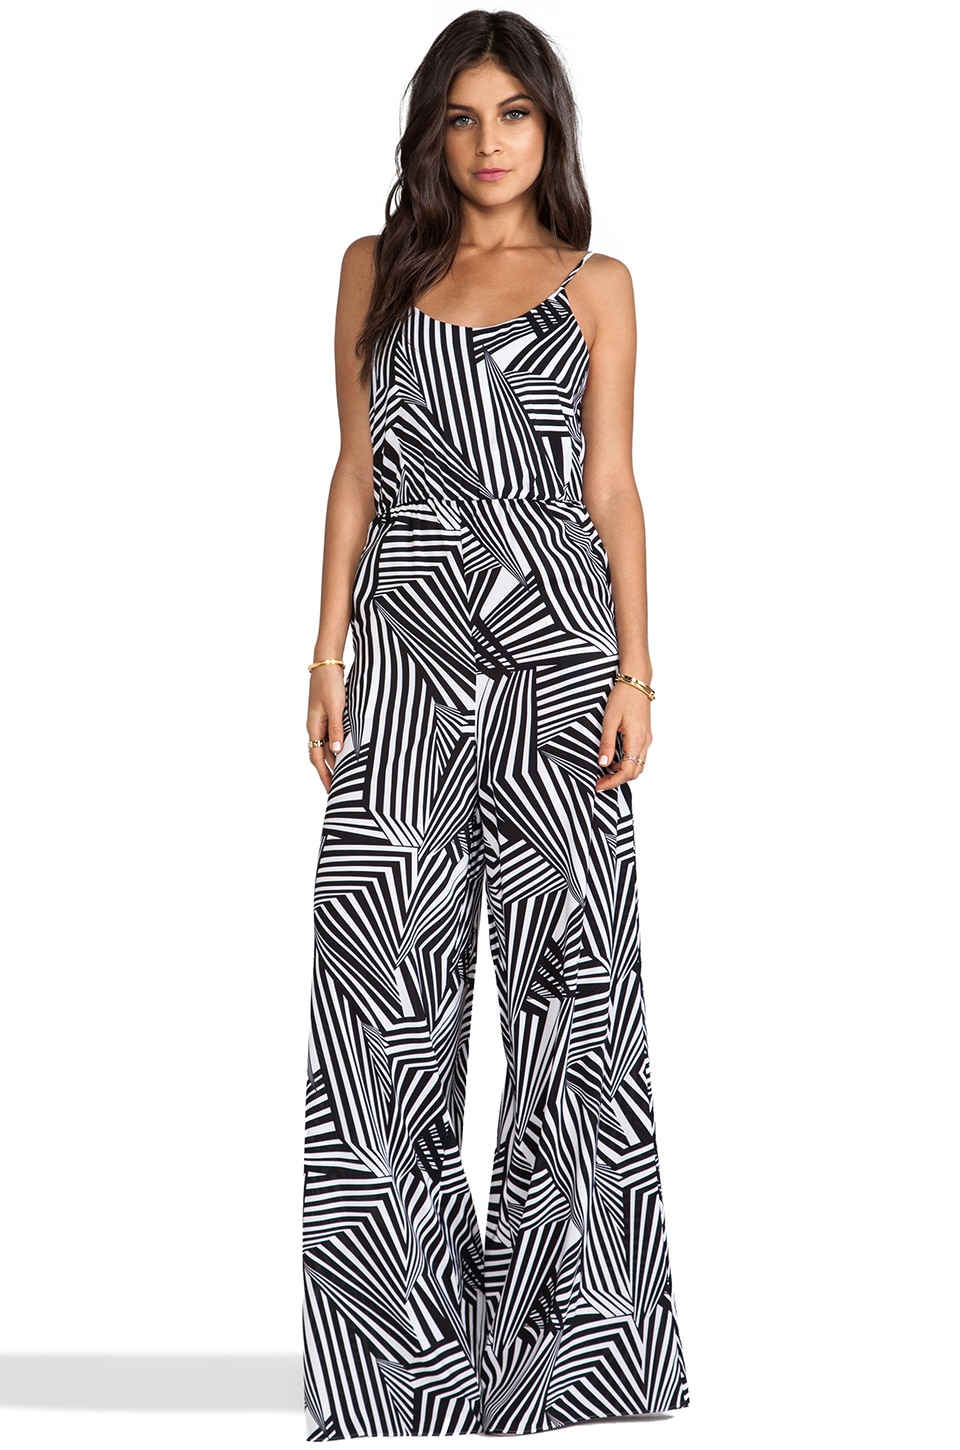 Alice + Olivia Liette High Waist Wide Leg Tank Jumpsuit in Carnival Geometric